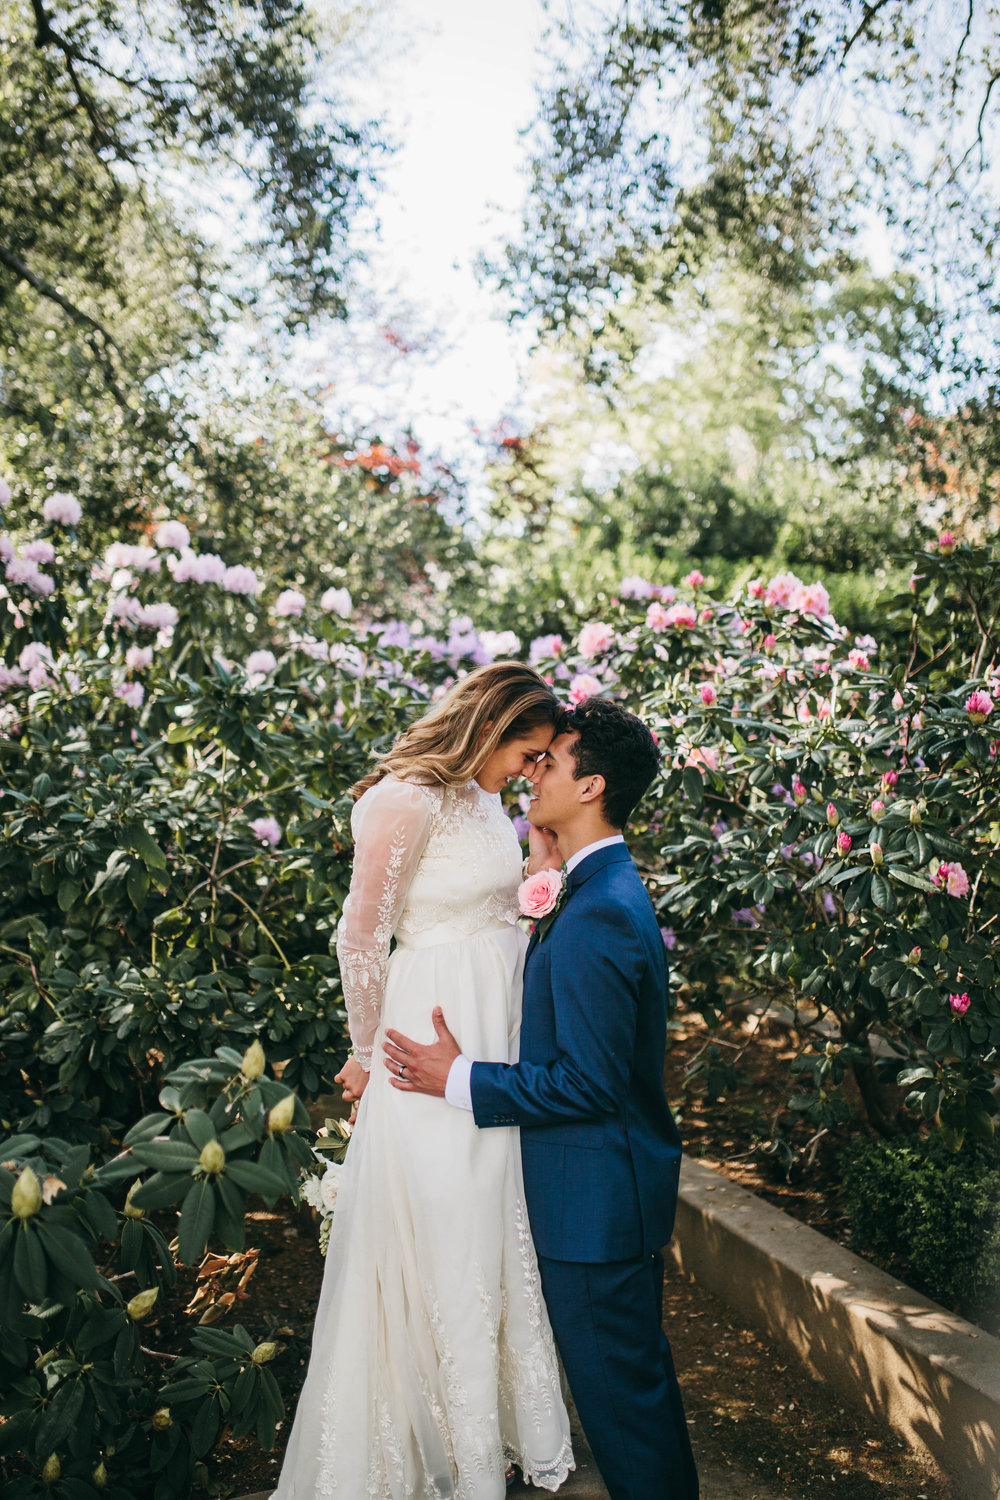 Elle + Hamilton -- Palo Alto Wedding -- Whitney Justesen Photography-600.jpg